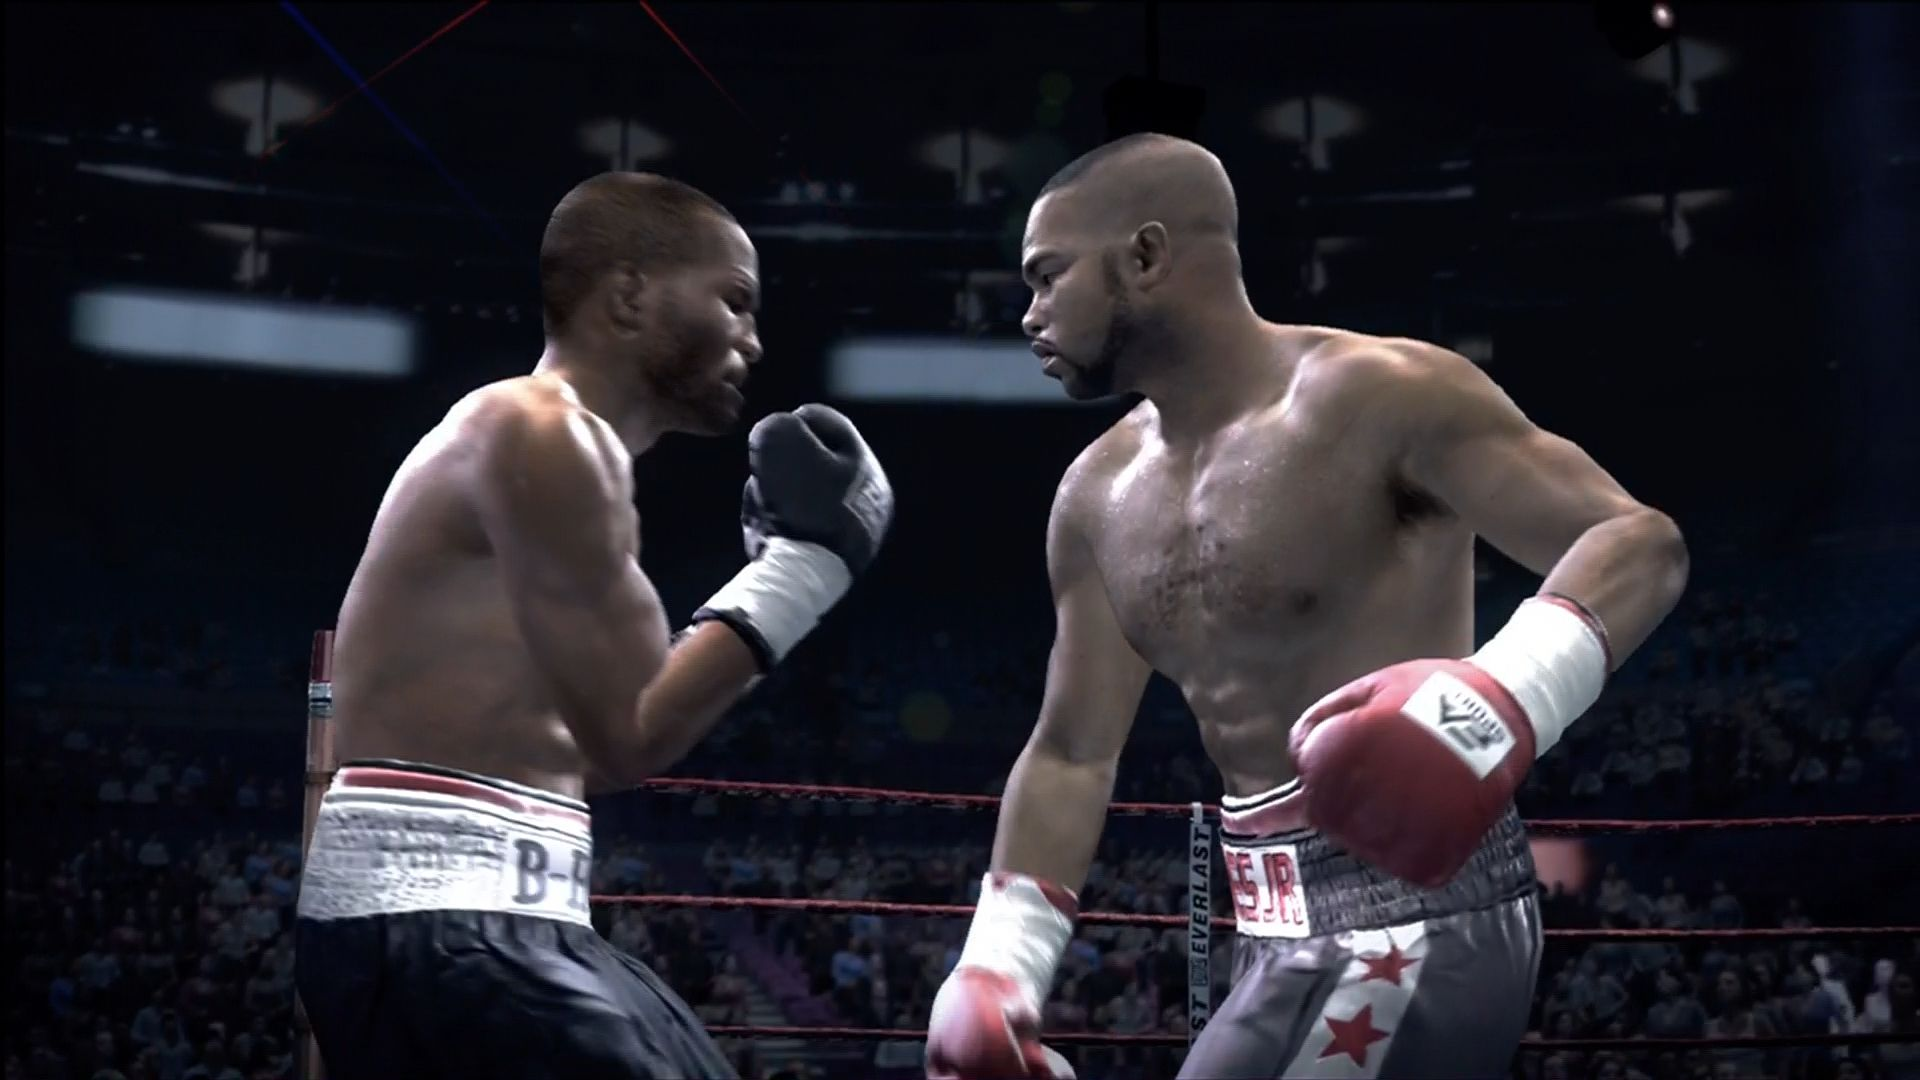 Fight Night Round 3 Xbox 360 The default camera stays close to the action.